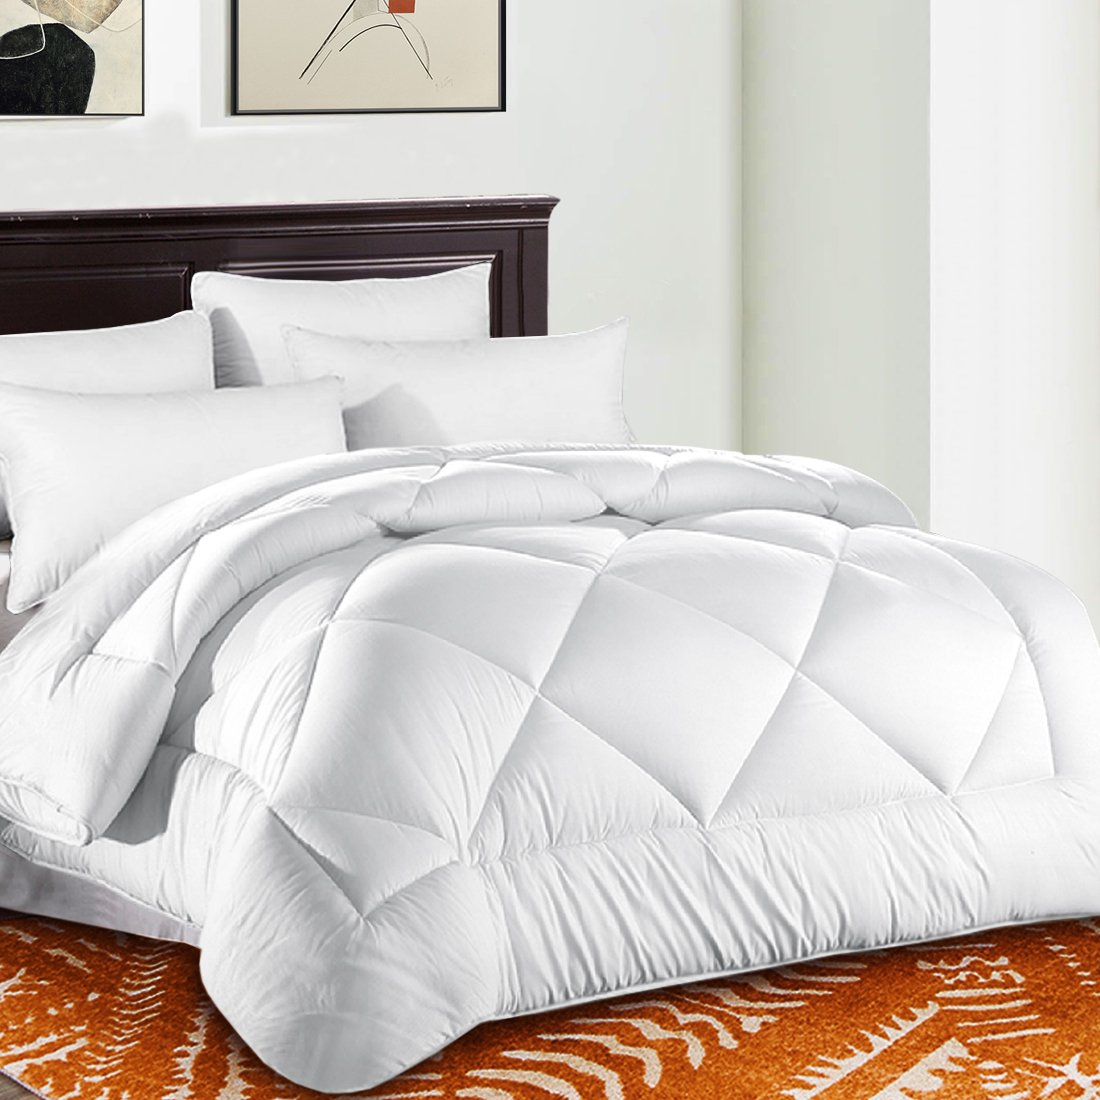 Queen Comforter Soft Quilted ♥ Down Alternative Duvet Insert with Corner Tabs Summer Cooling 2100 Series, Fluffy Reversible Hotel Collection, Hypoallergenic for All Season, Snow White, 88 x 88 inches by TEKAMON